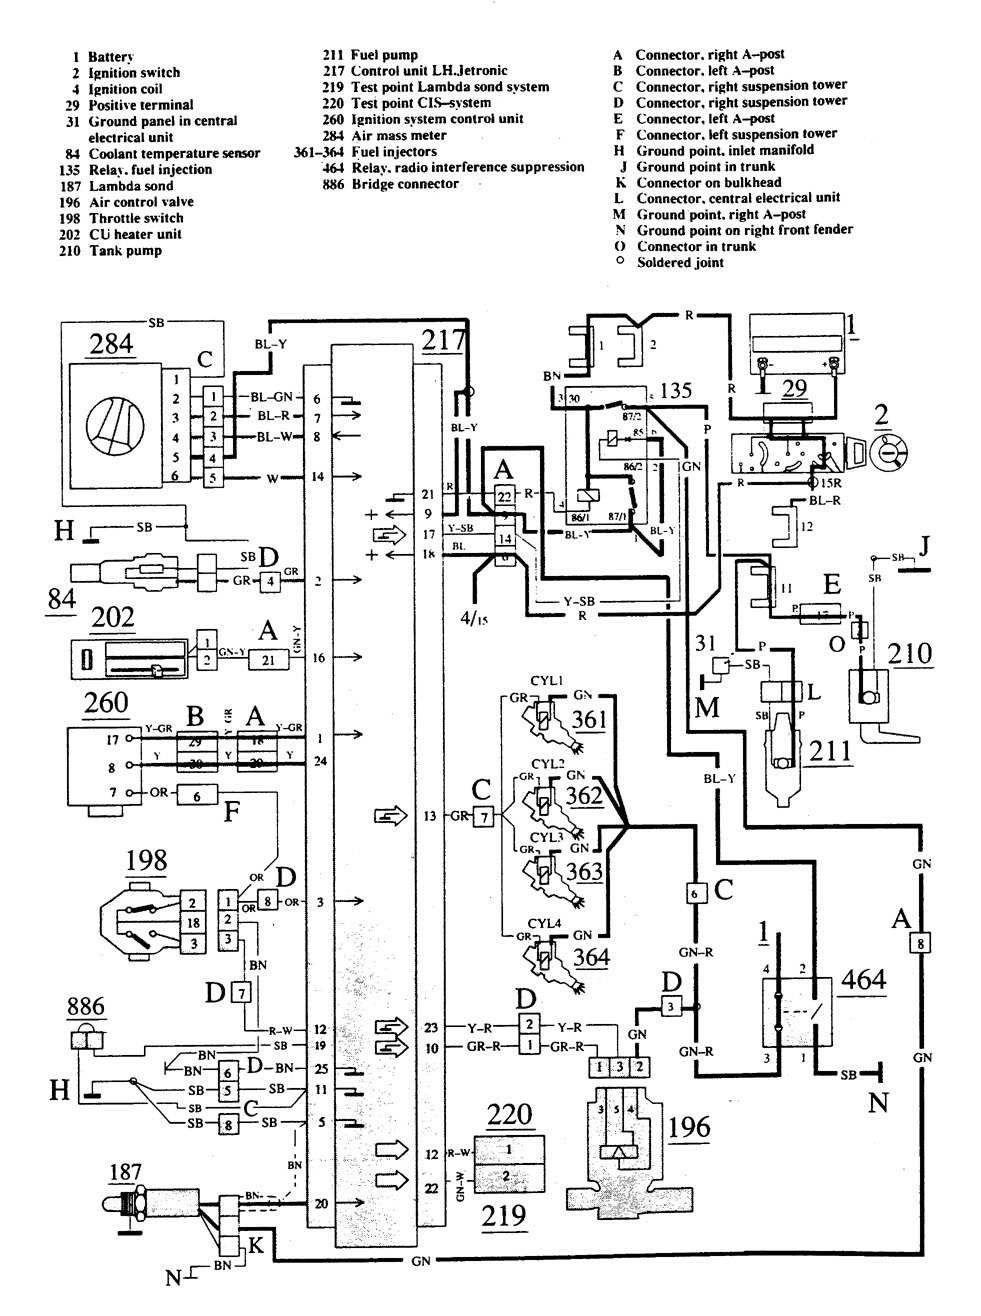 hight resolution of 1988 pontiac fiero wiring diagram pontiac auto wiring 1986 pontiac fiero wiring schematic pontiac fiero wiring